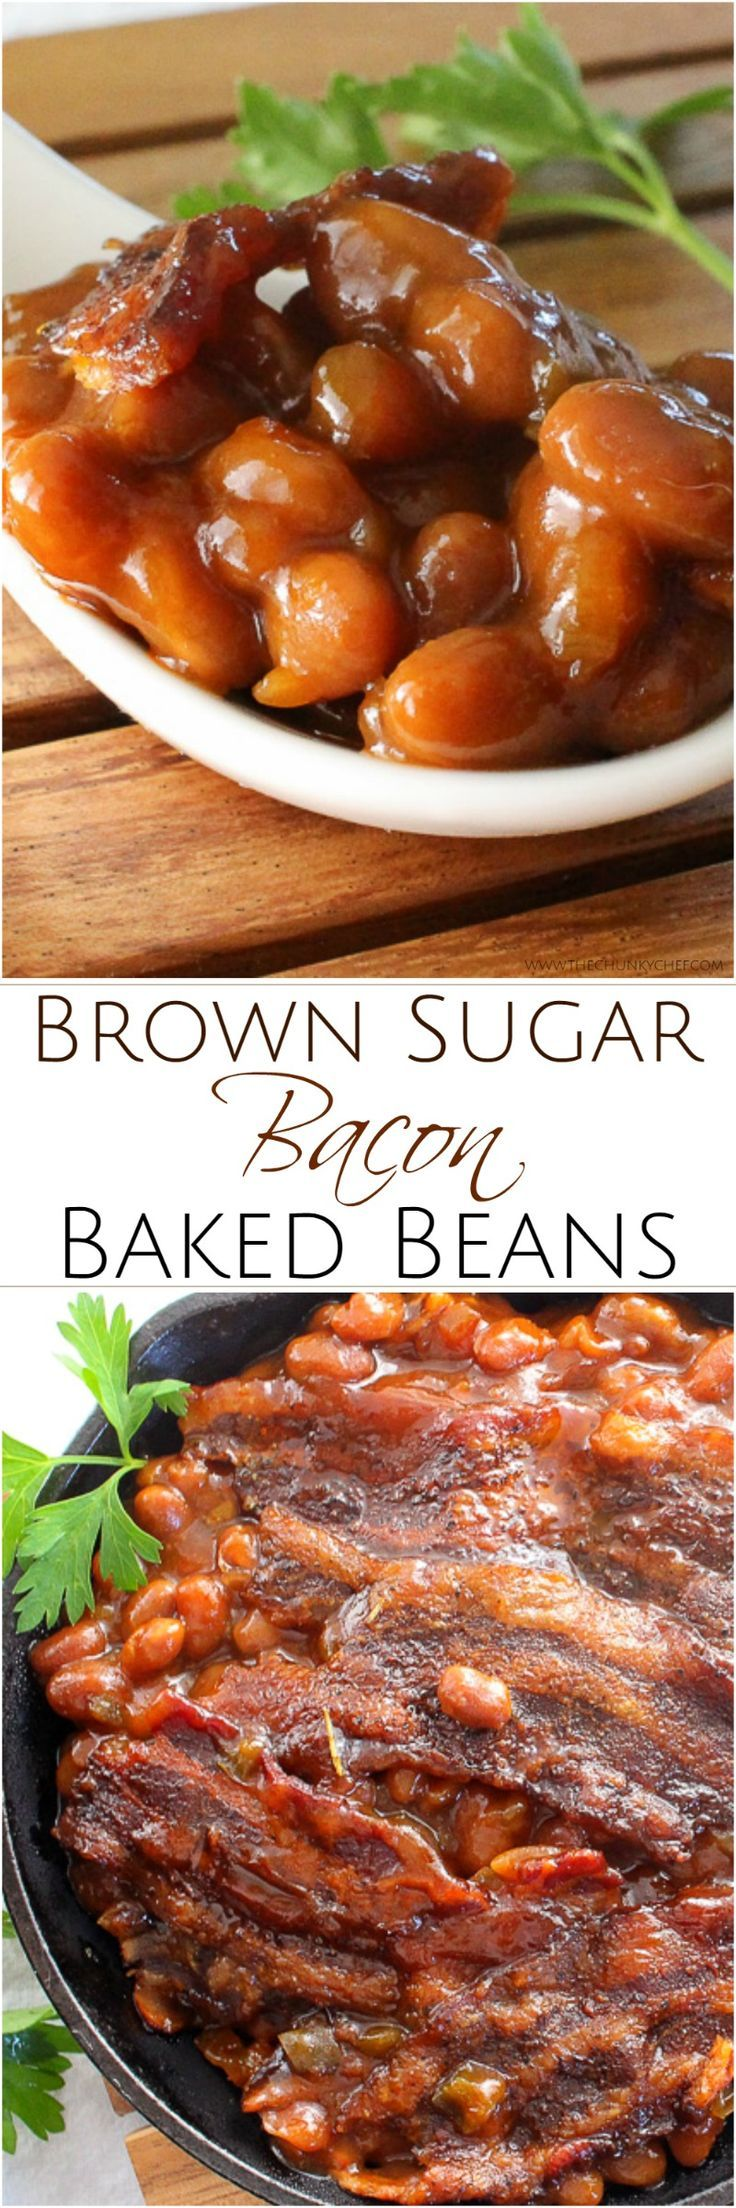 These baked beans are semi-homemade and the perfect blend of sweet, savory and smoky! Topped with delicious bacon, they're sure to be a hit!